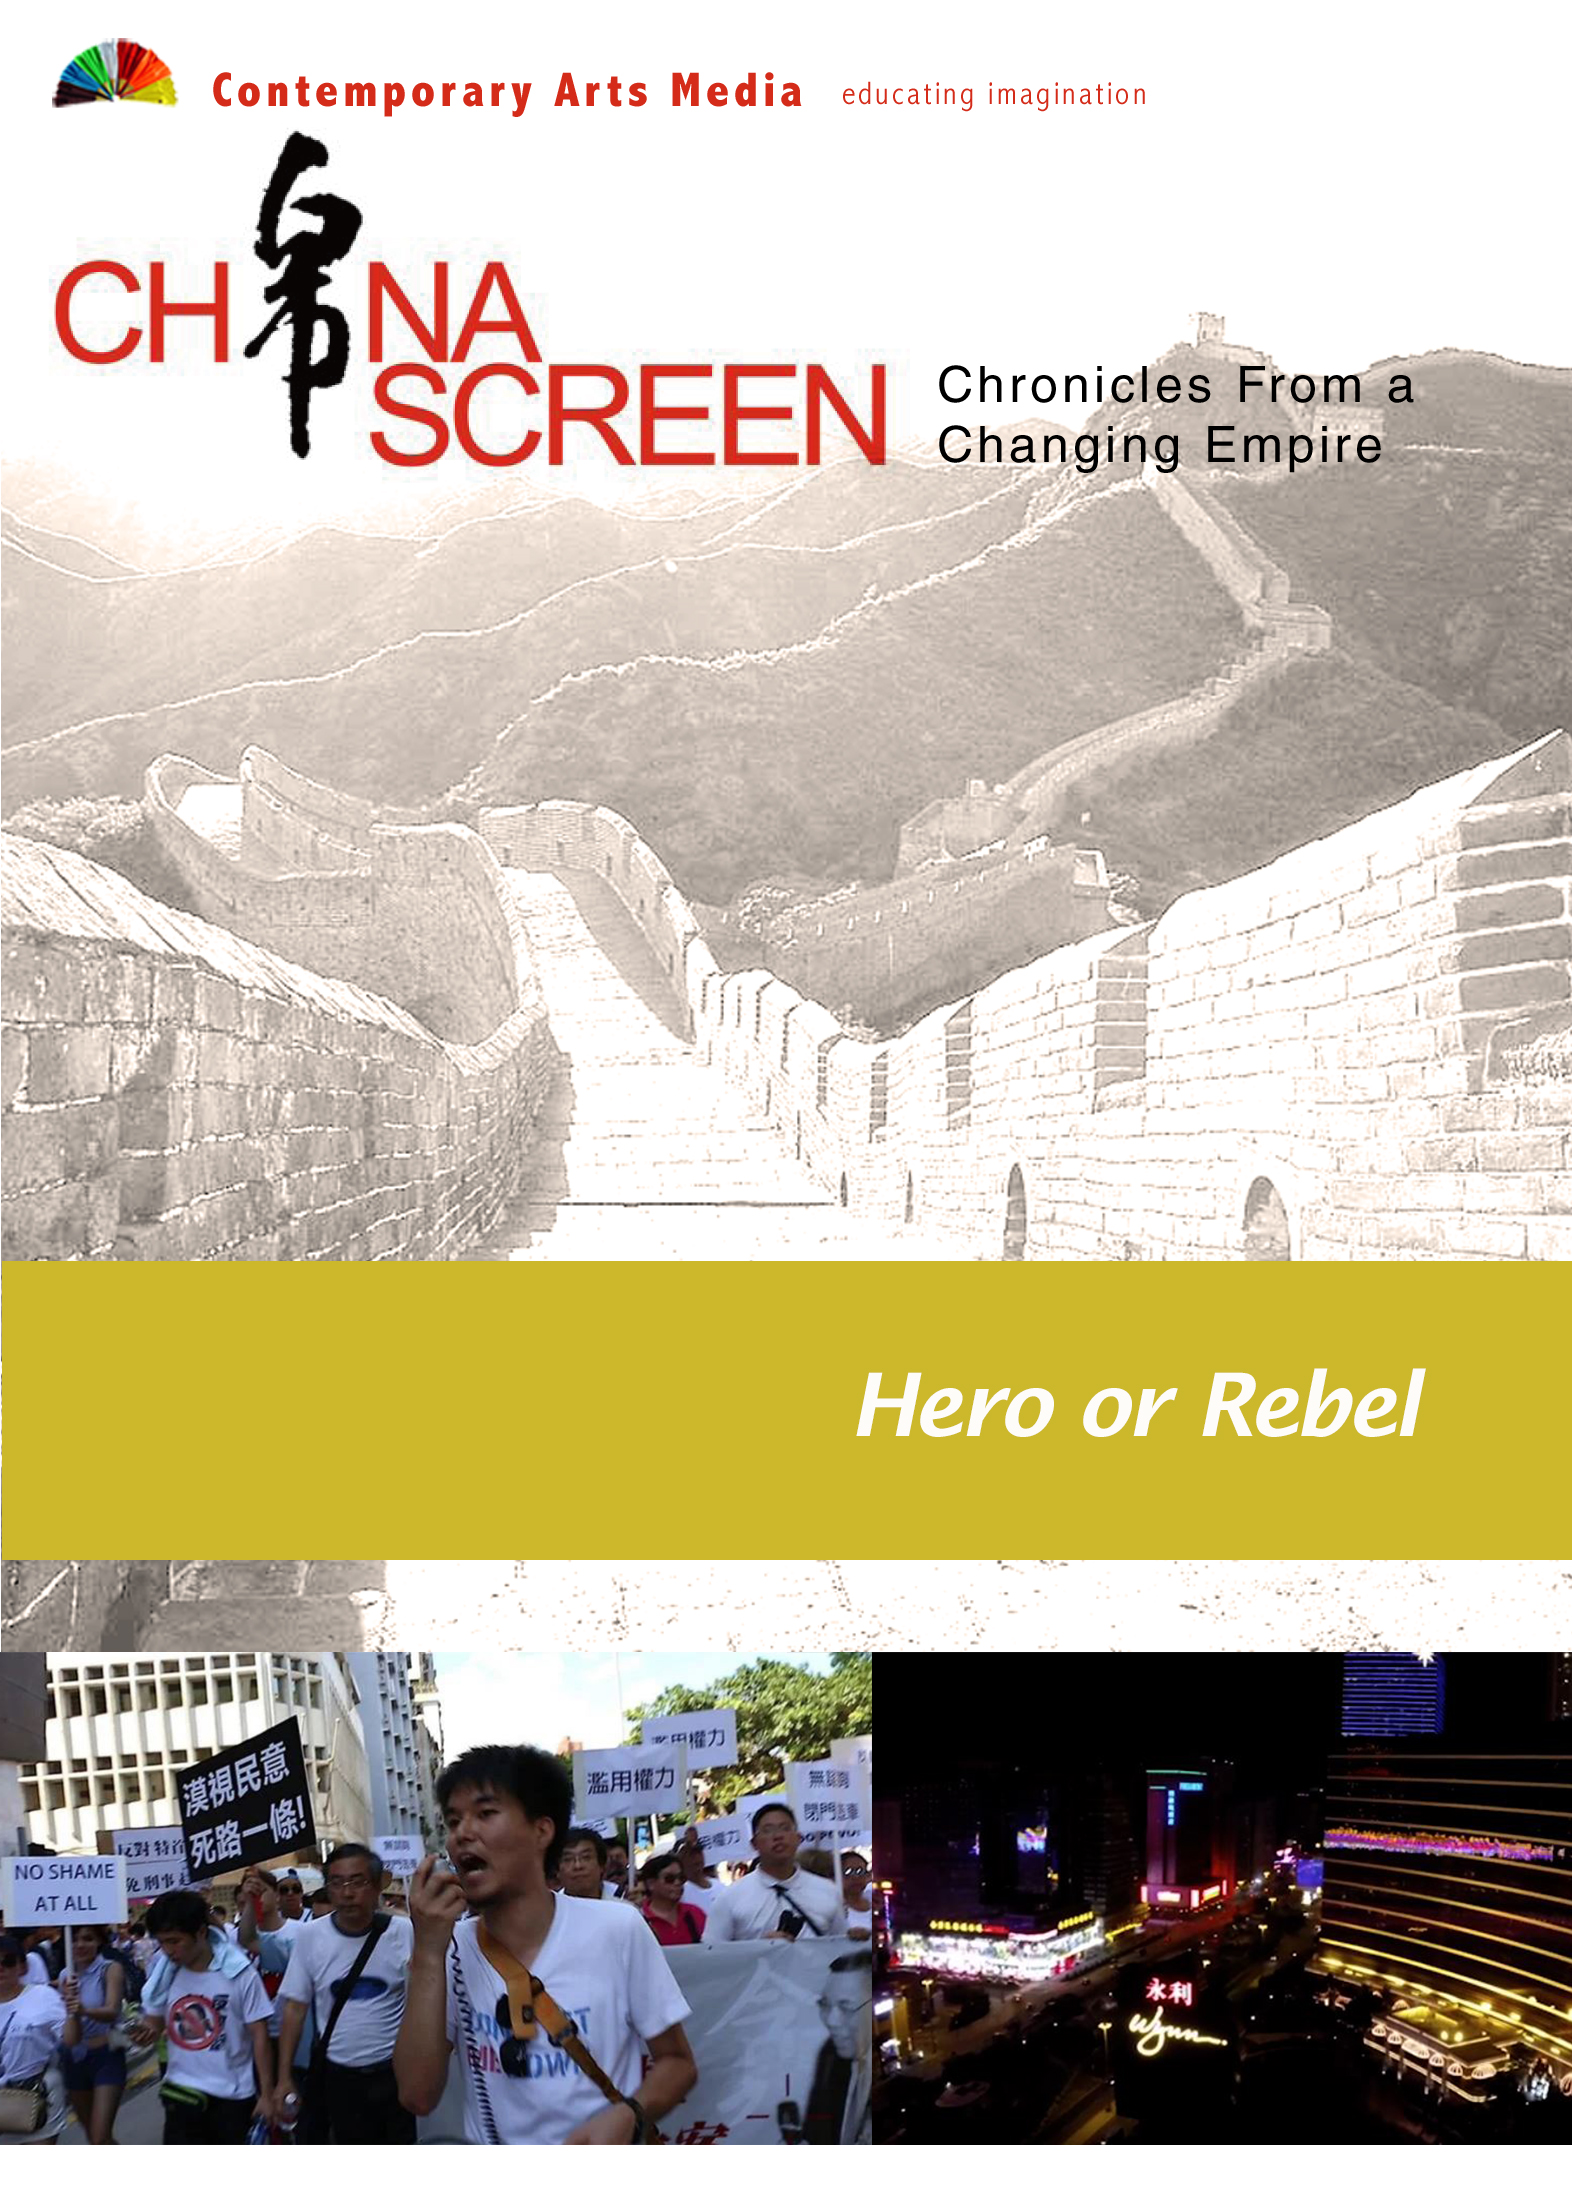 China Screen: Hero or Rebel